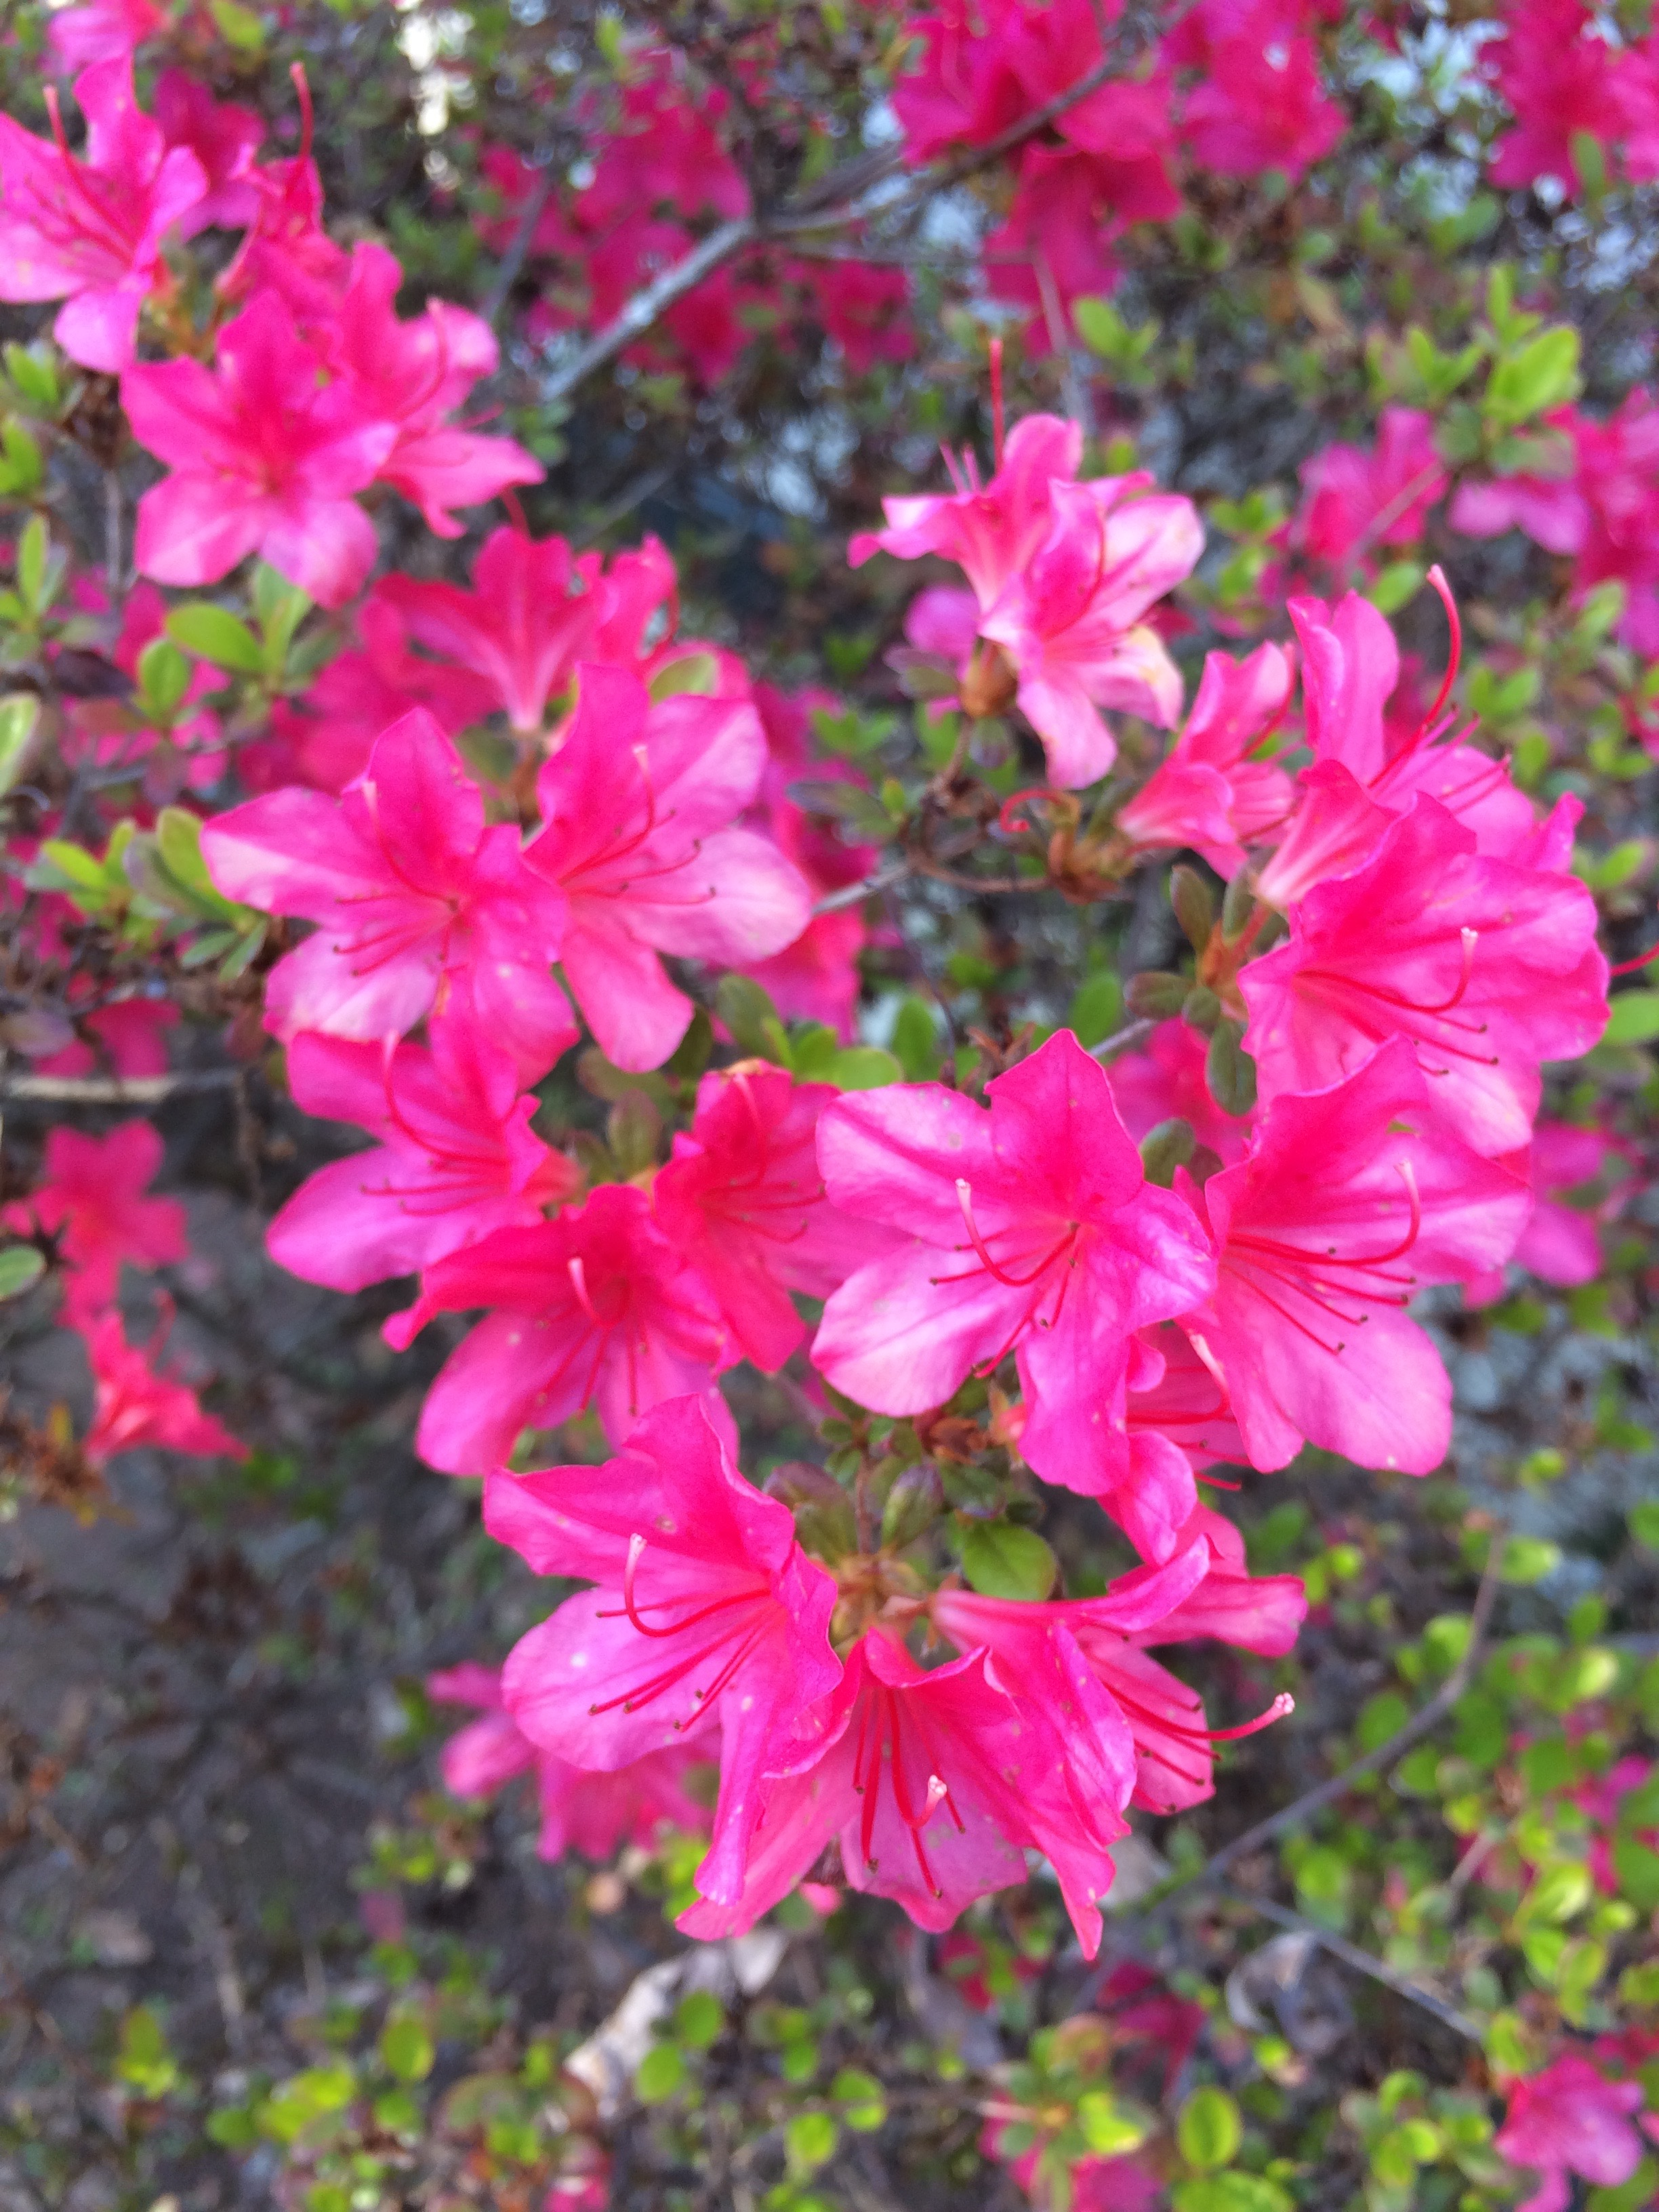 The region is known for its azaleas.